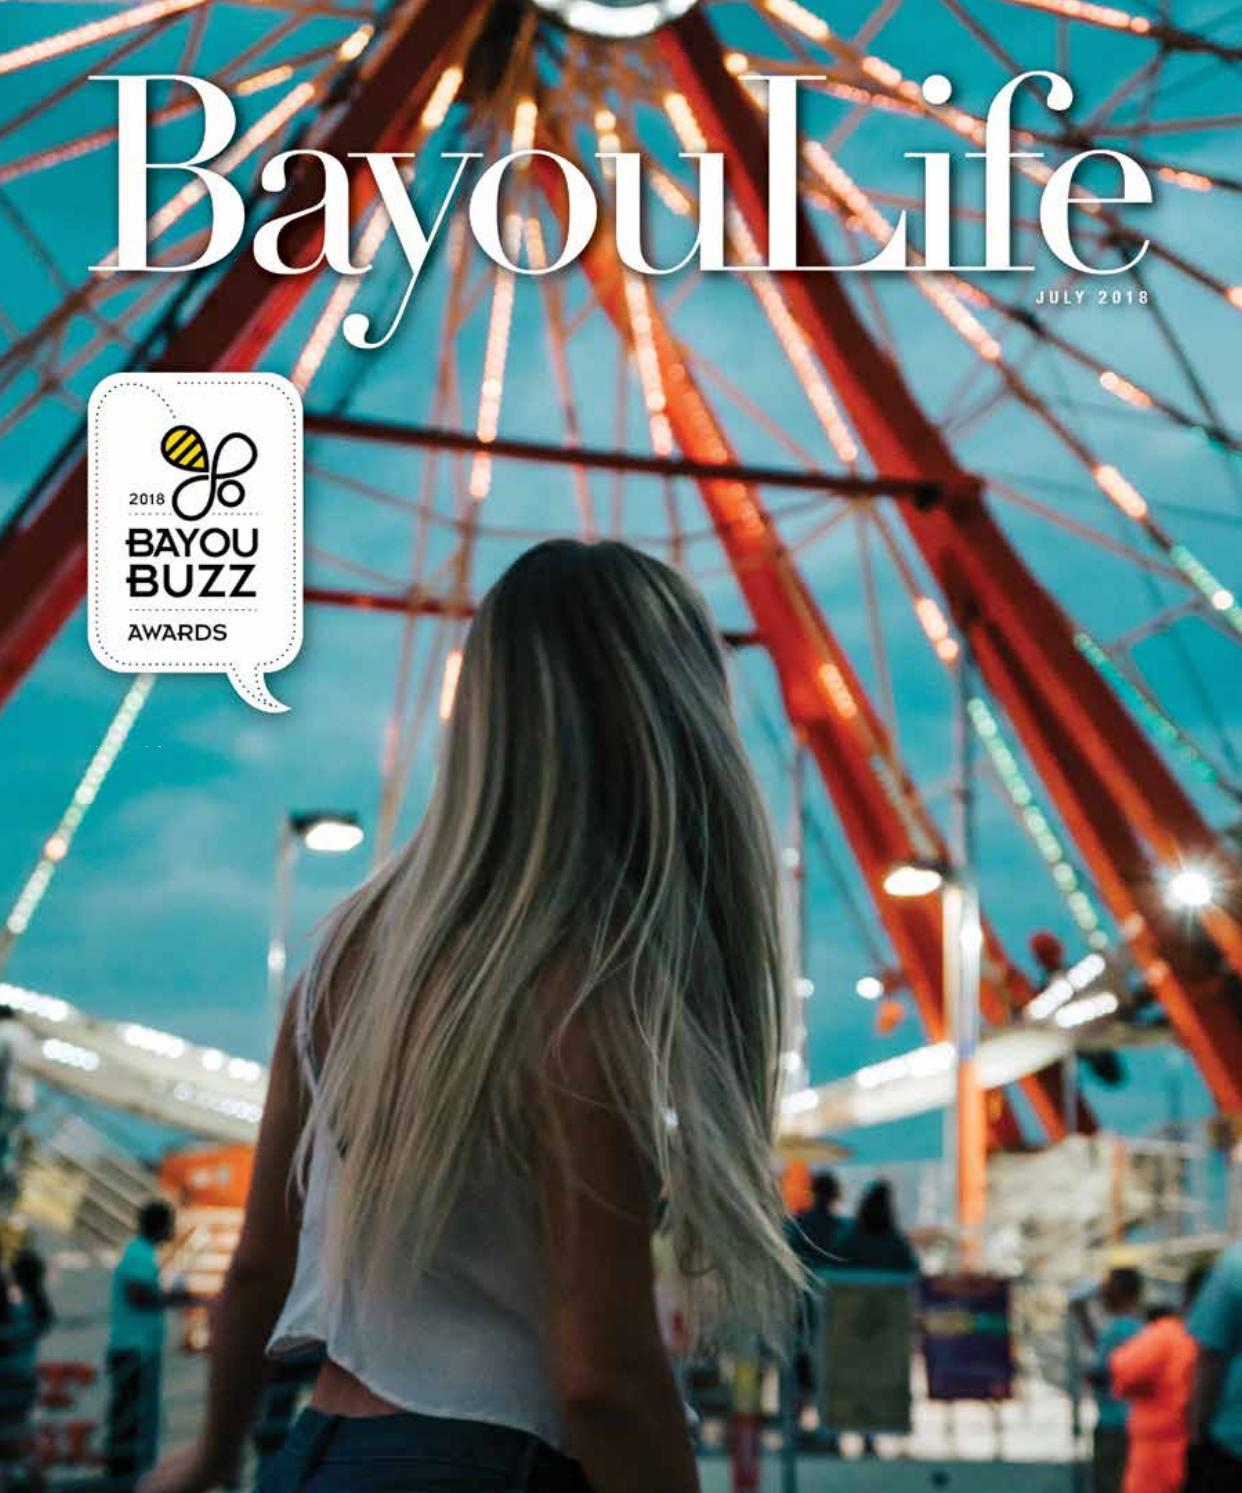 BayouLife Magazine July 2018 by BayouLife Magazine - issuu 3590a76fa4b